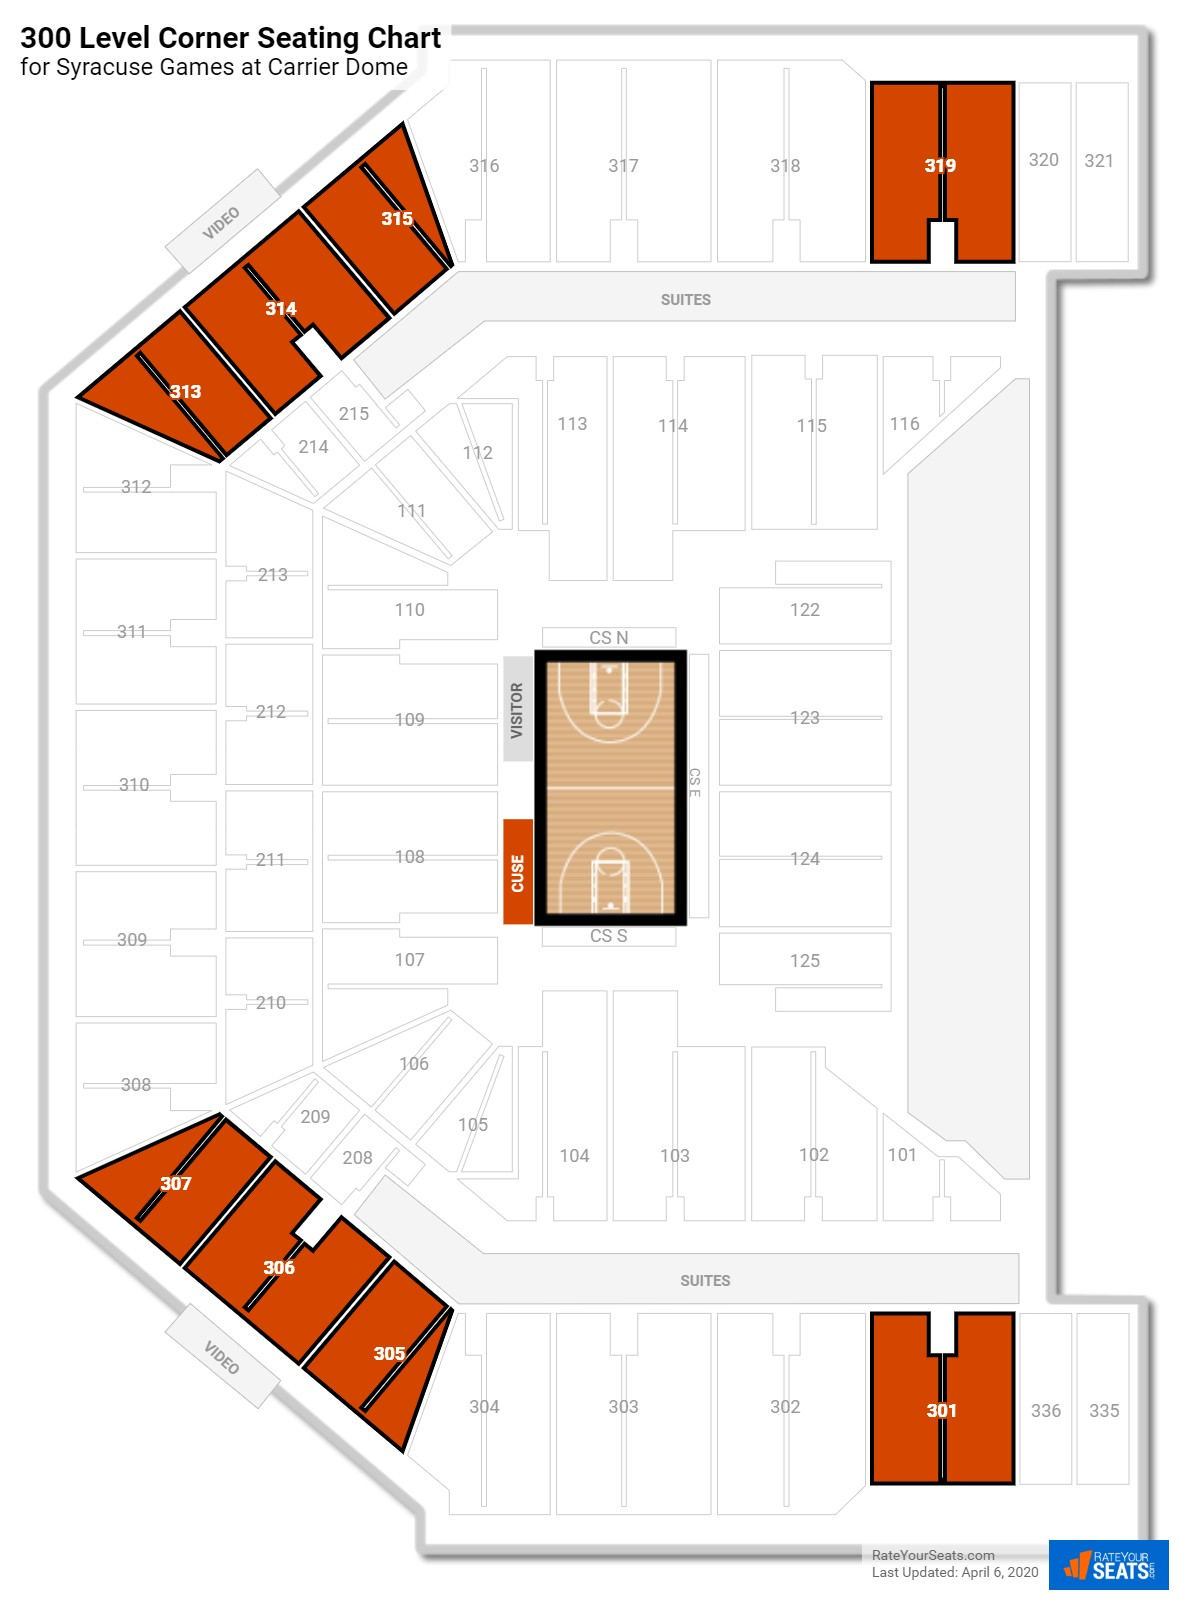 Carrier Dome 300 Level Corner seating chart